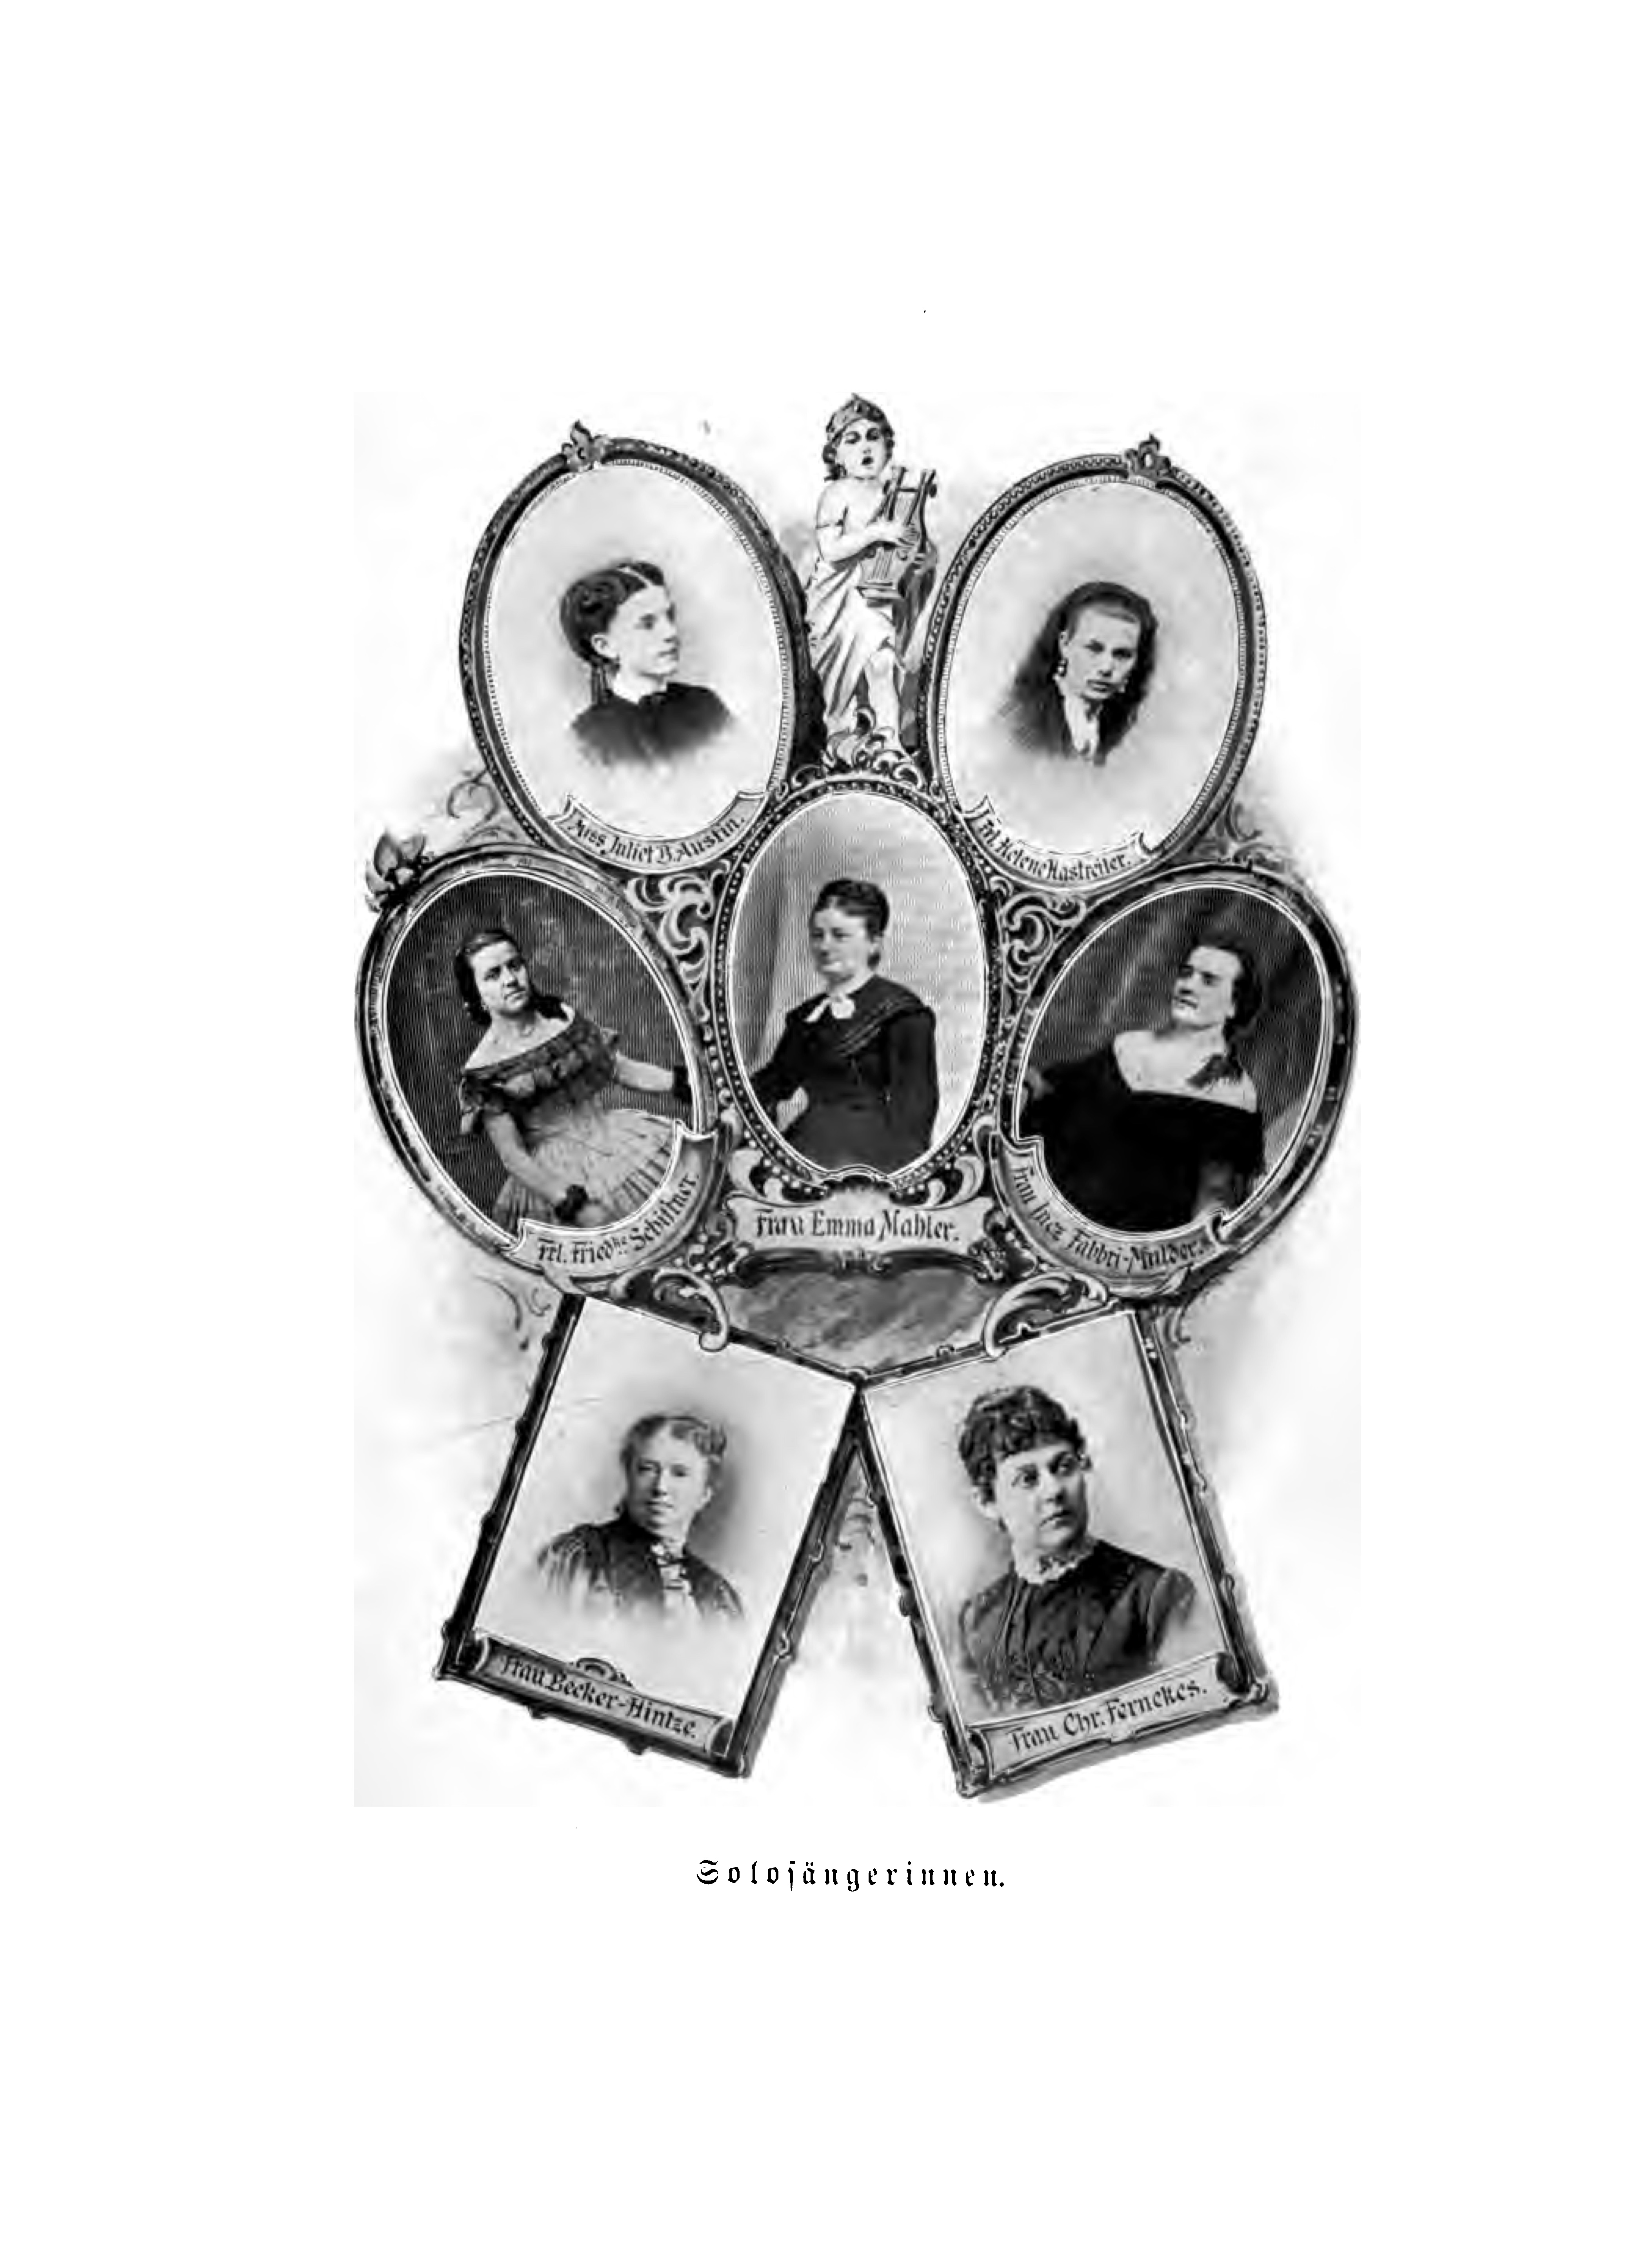 <table class=&quot;lightbox&quot;><tr><td colspan=2 class=&quot;lightbox-title&quot;>Women of the Milwaukee Musical Society</td></tr><tr><td colspan=2 class=&quot;lightbox-caption&quot;>Women were also part of the Milwaukee Musical Society. A small group of such singers from the 1850s are illustrated here.</td></tr><tr><td colspan=2 class=&quot;lightbox-spacer&quot;></td></tr><tr class=&quot;lightbox-detail&quot;><td class=&quot;cell-title&quot;>Source: </td><td class=&quot;cell-value&quot;>From